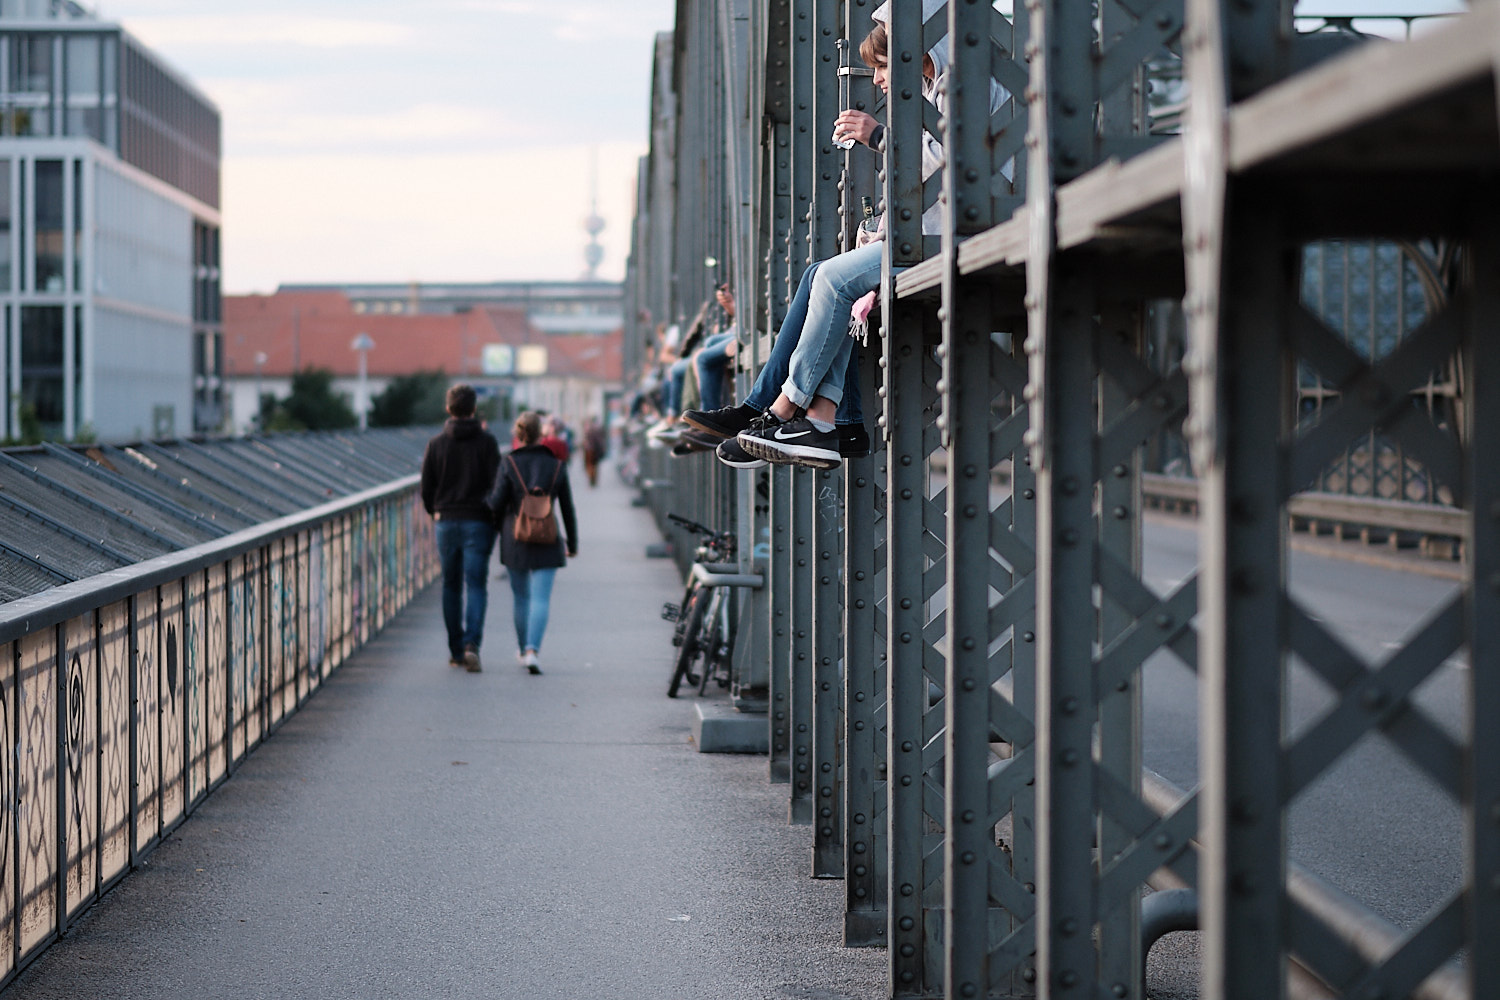 A view of the east side of the Hackerbrücke bridge from the south side in the afternoon. Many young people sitting over the bridge beams with swinging legs enjoying the sunset view